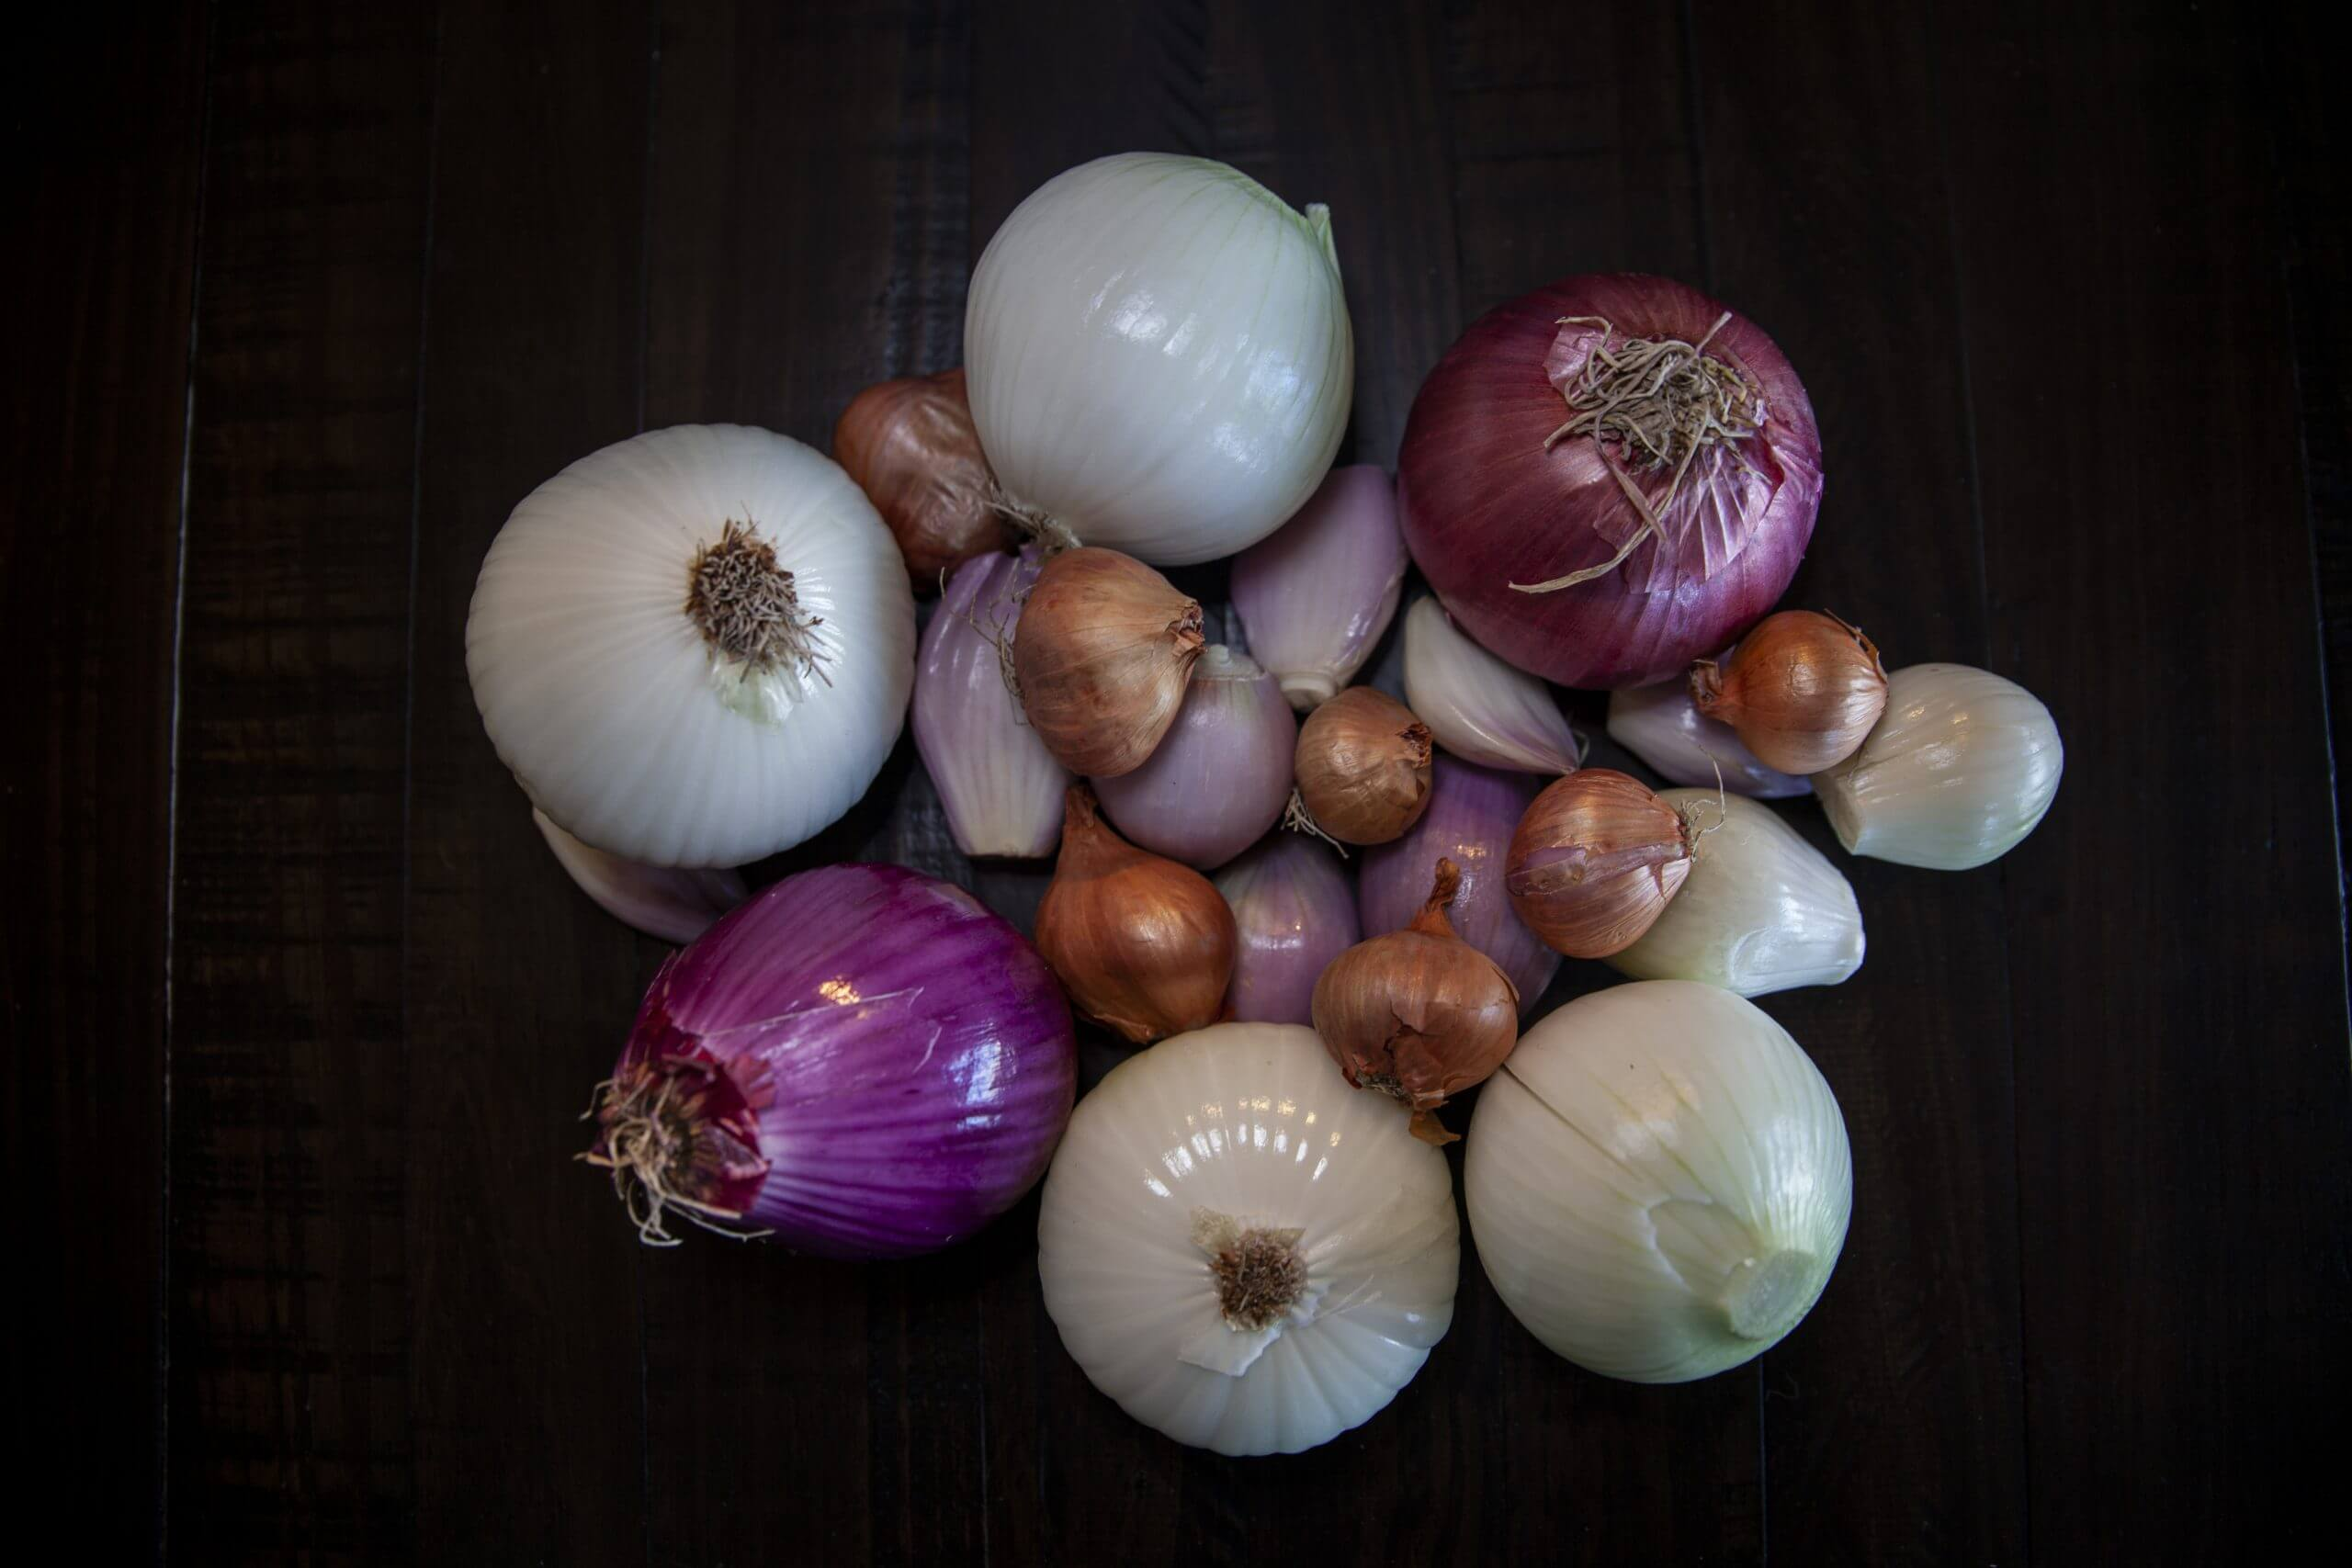 Assorted onions and shallots resting on a dark table.